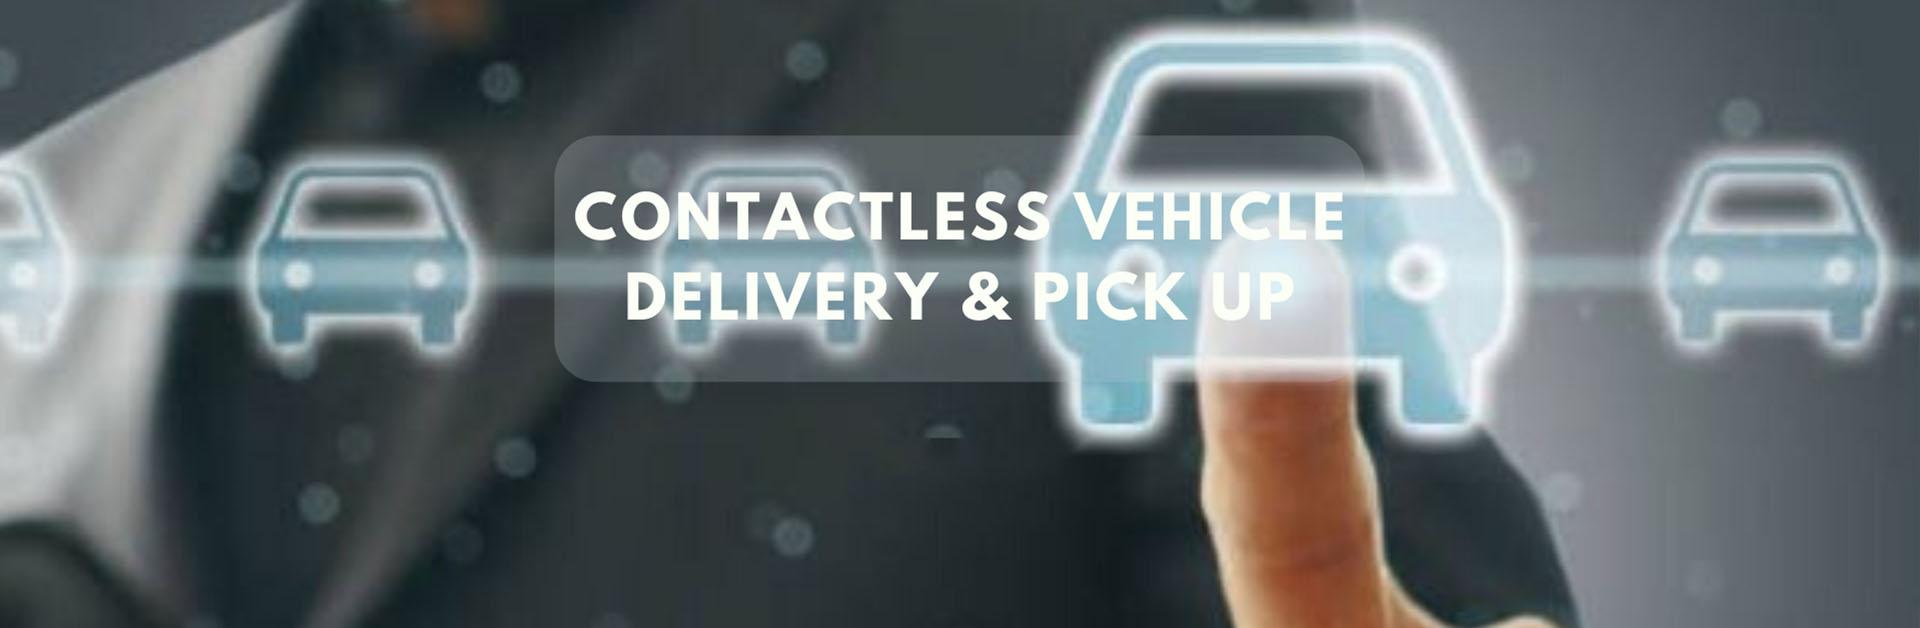 Woodleys Motors Group has contactless vehicle delivery and pick up